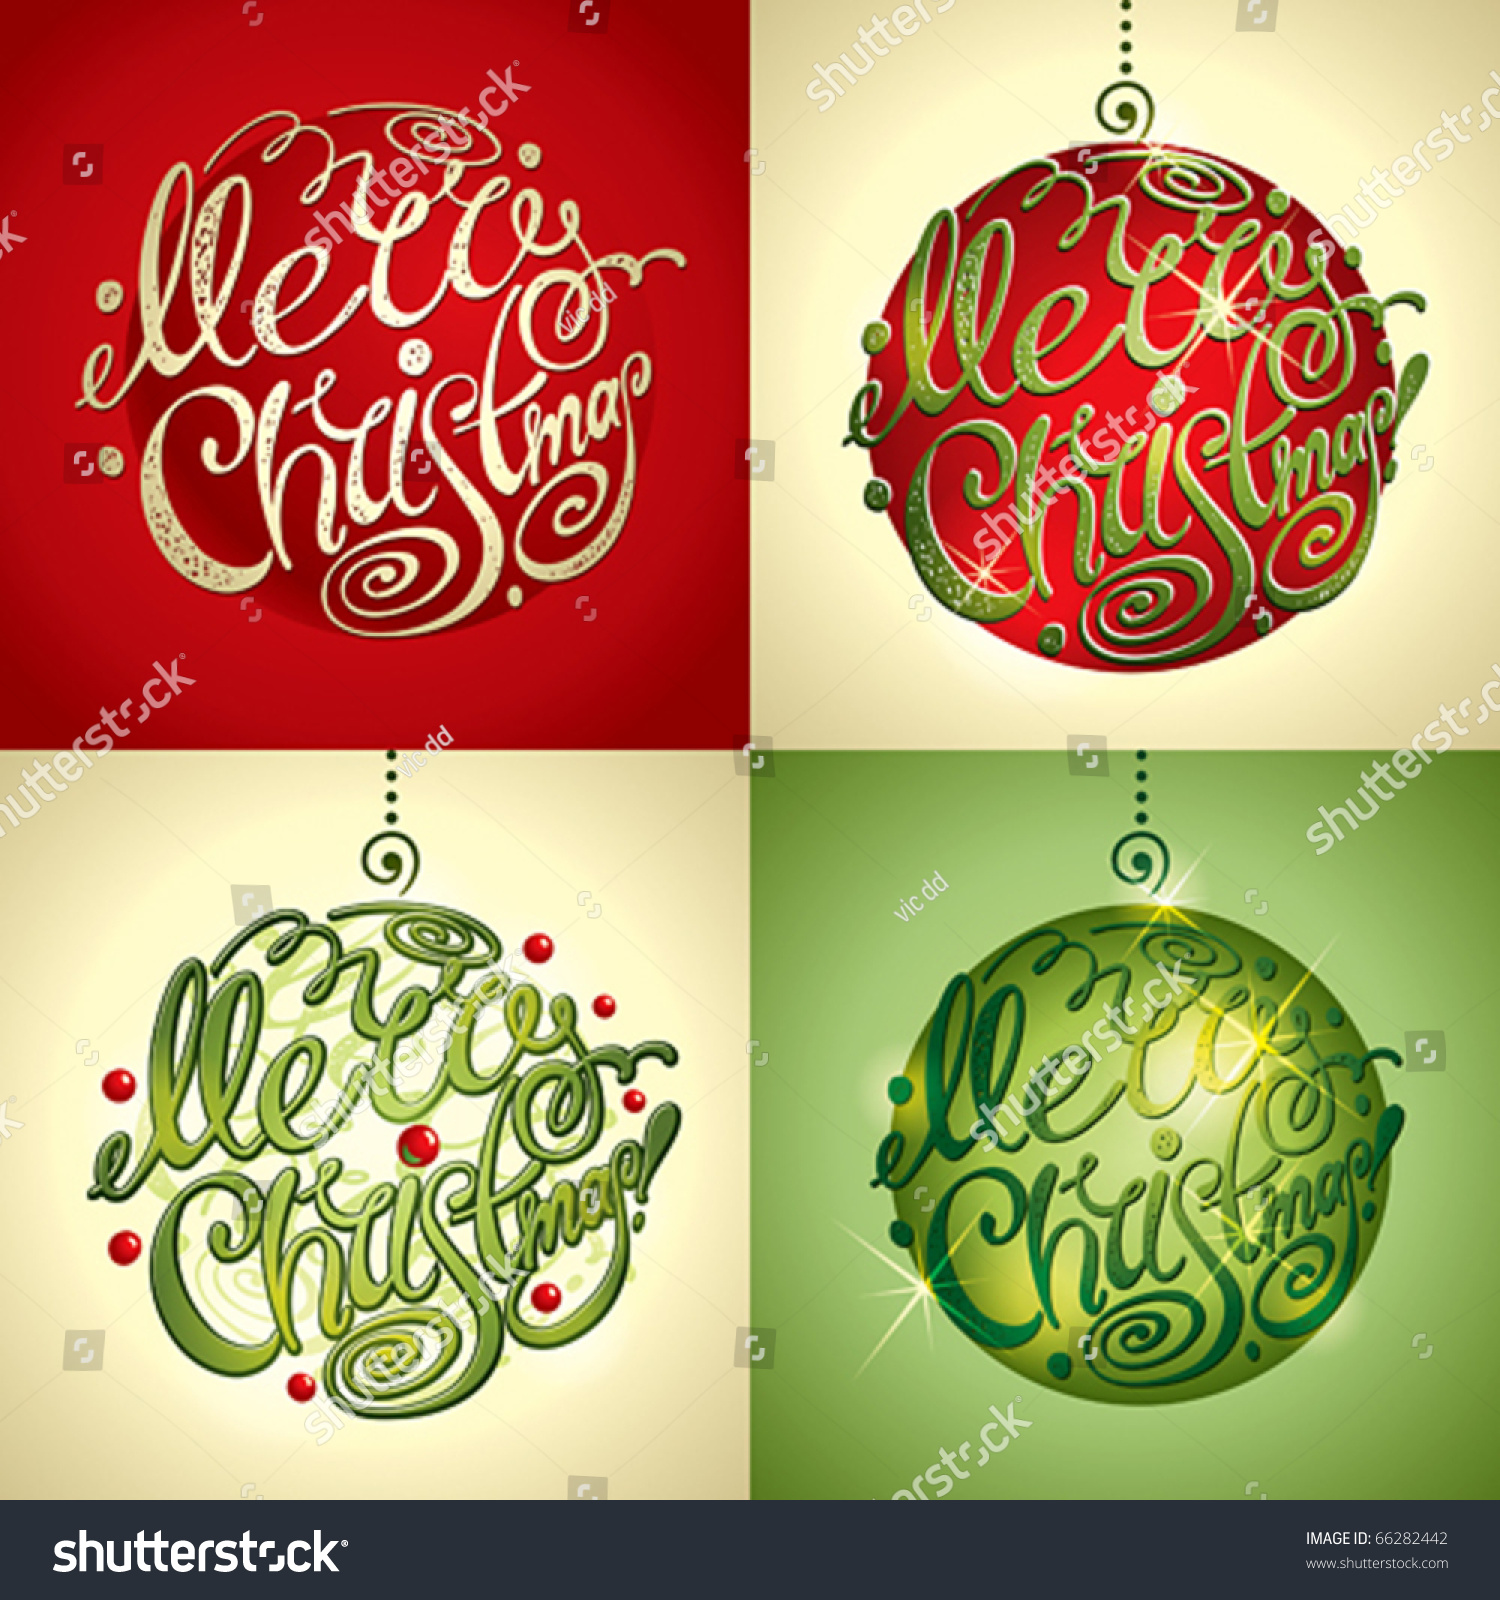 Colorful Color By Number Christmas Pictures Motif - Coloring Page ...